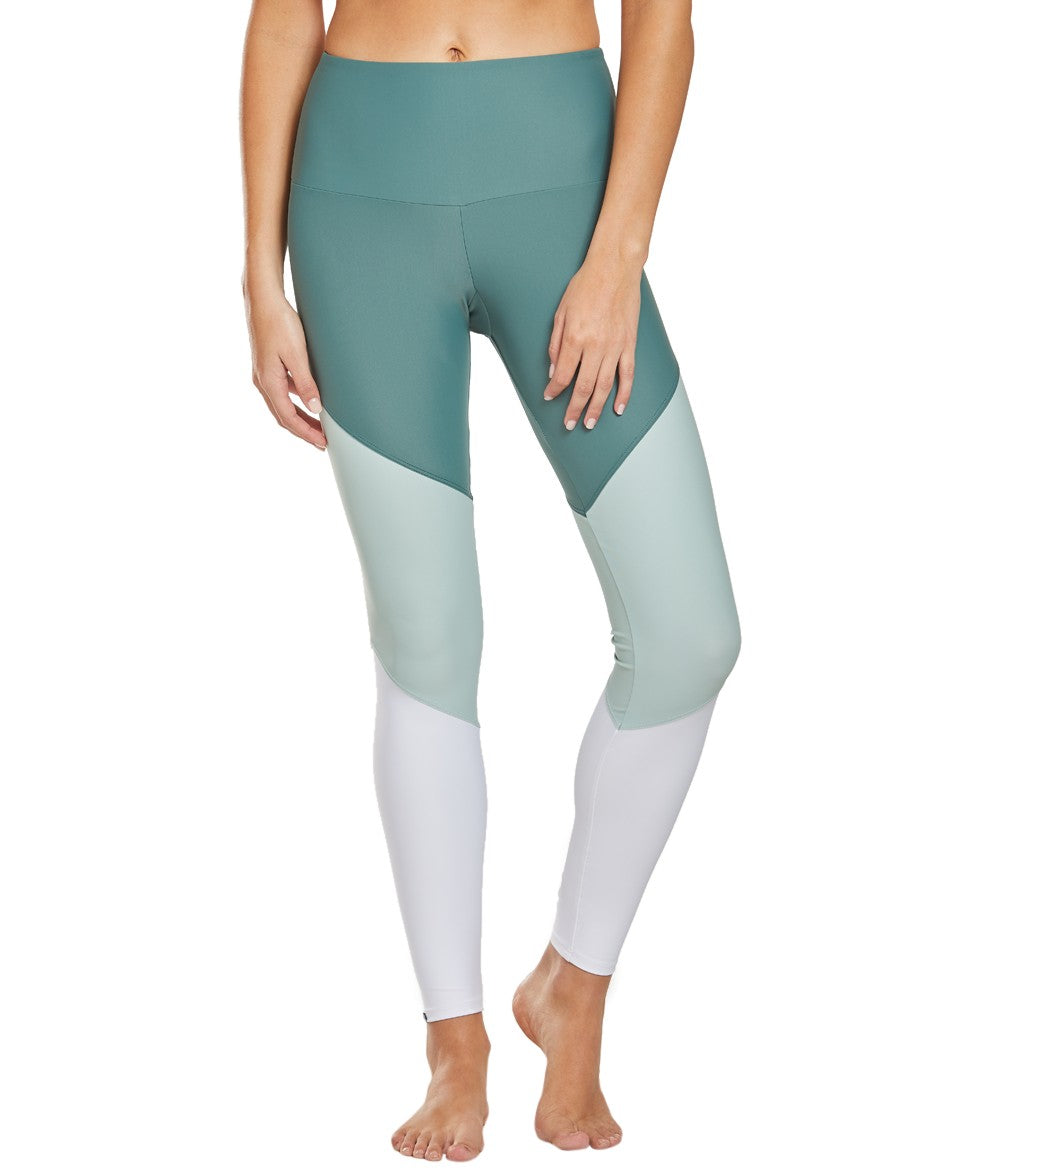 Onzie High Waisted Track Yoga Leggings - Pale Cacti Combo Spandex